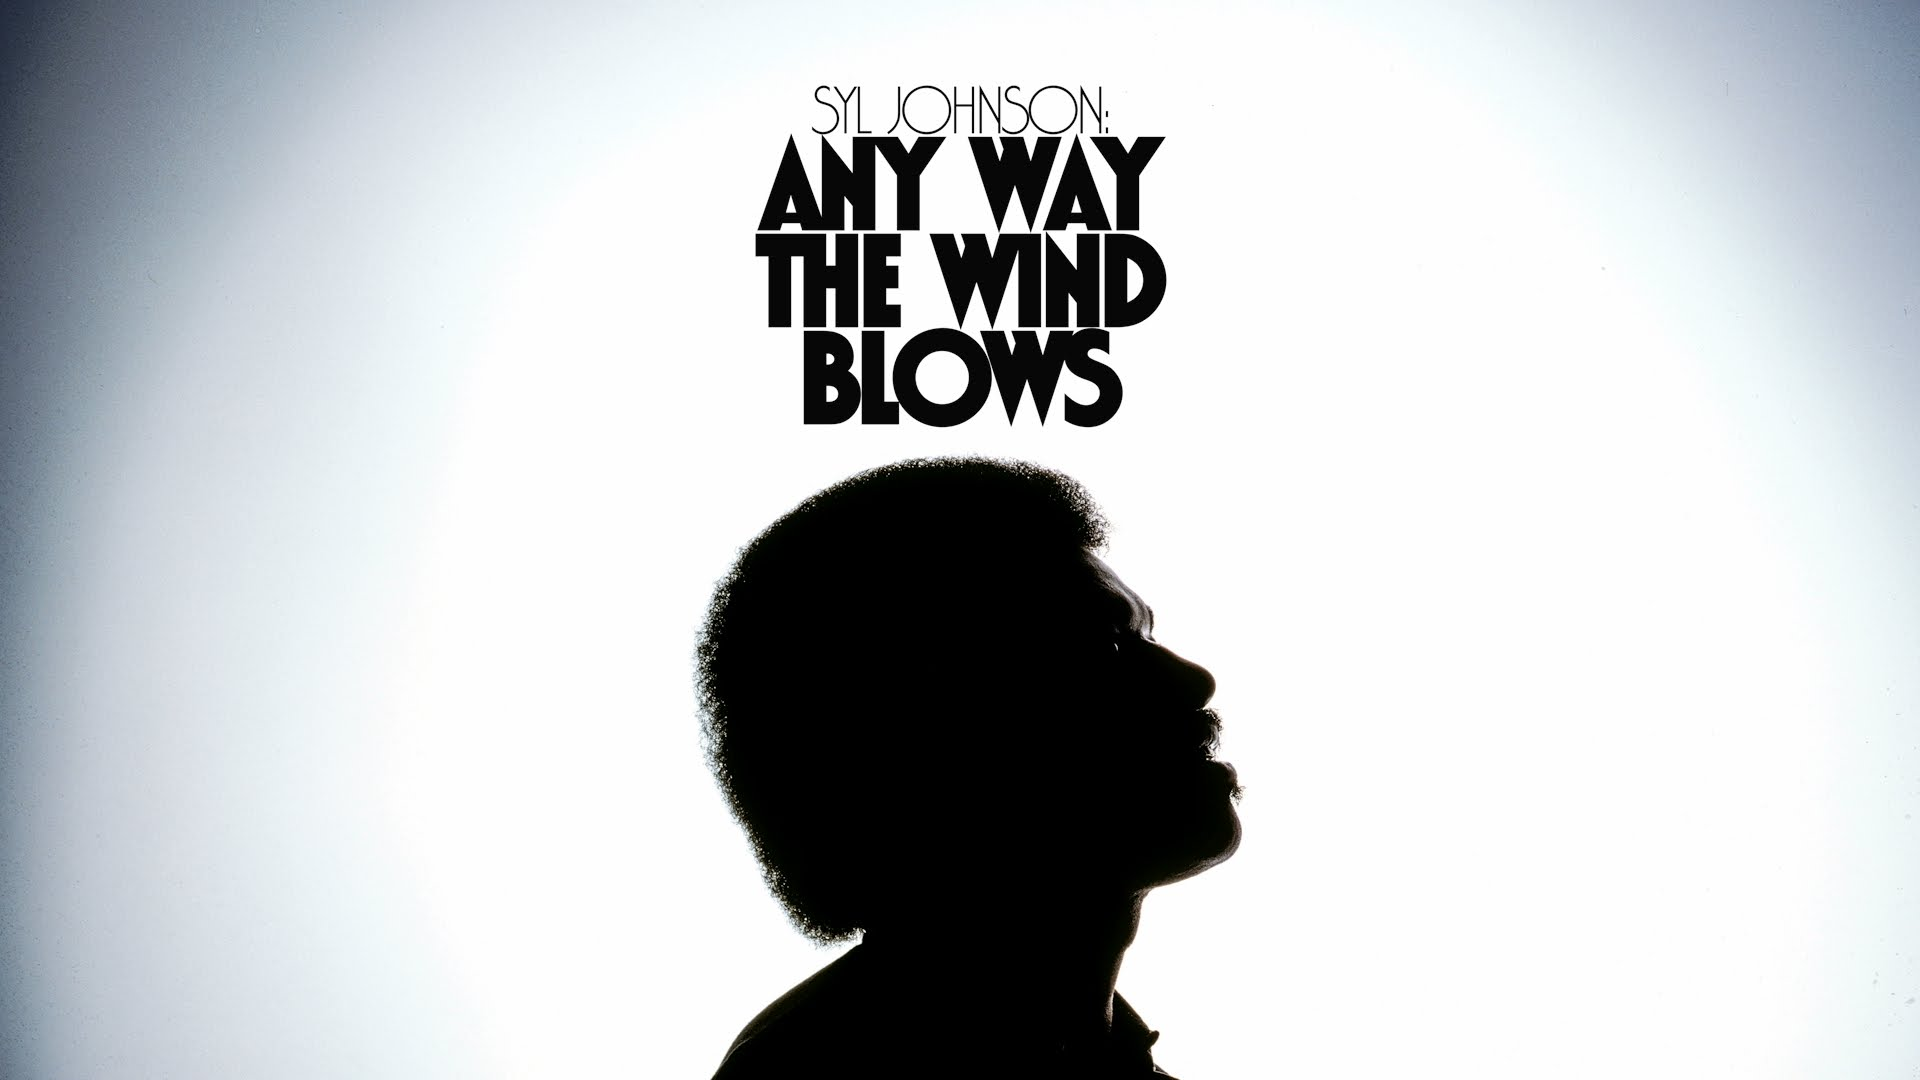 when the wind blows summary